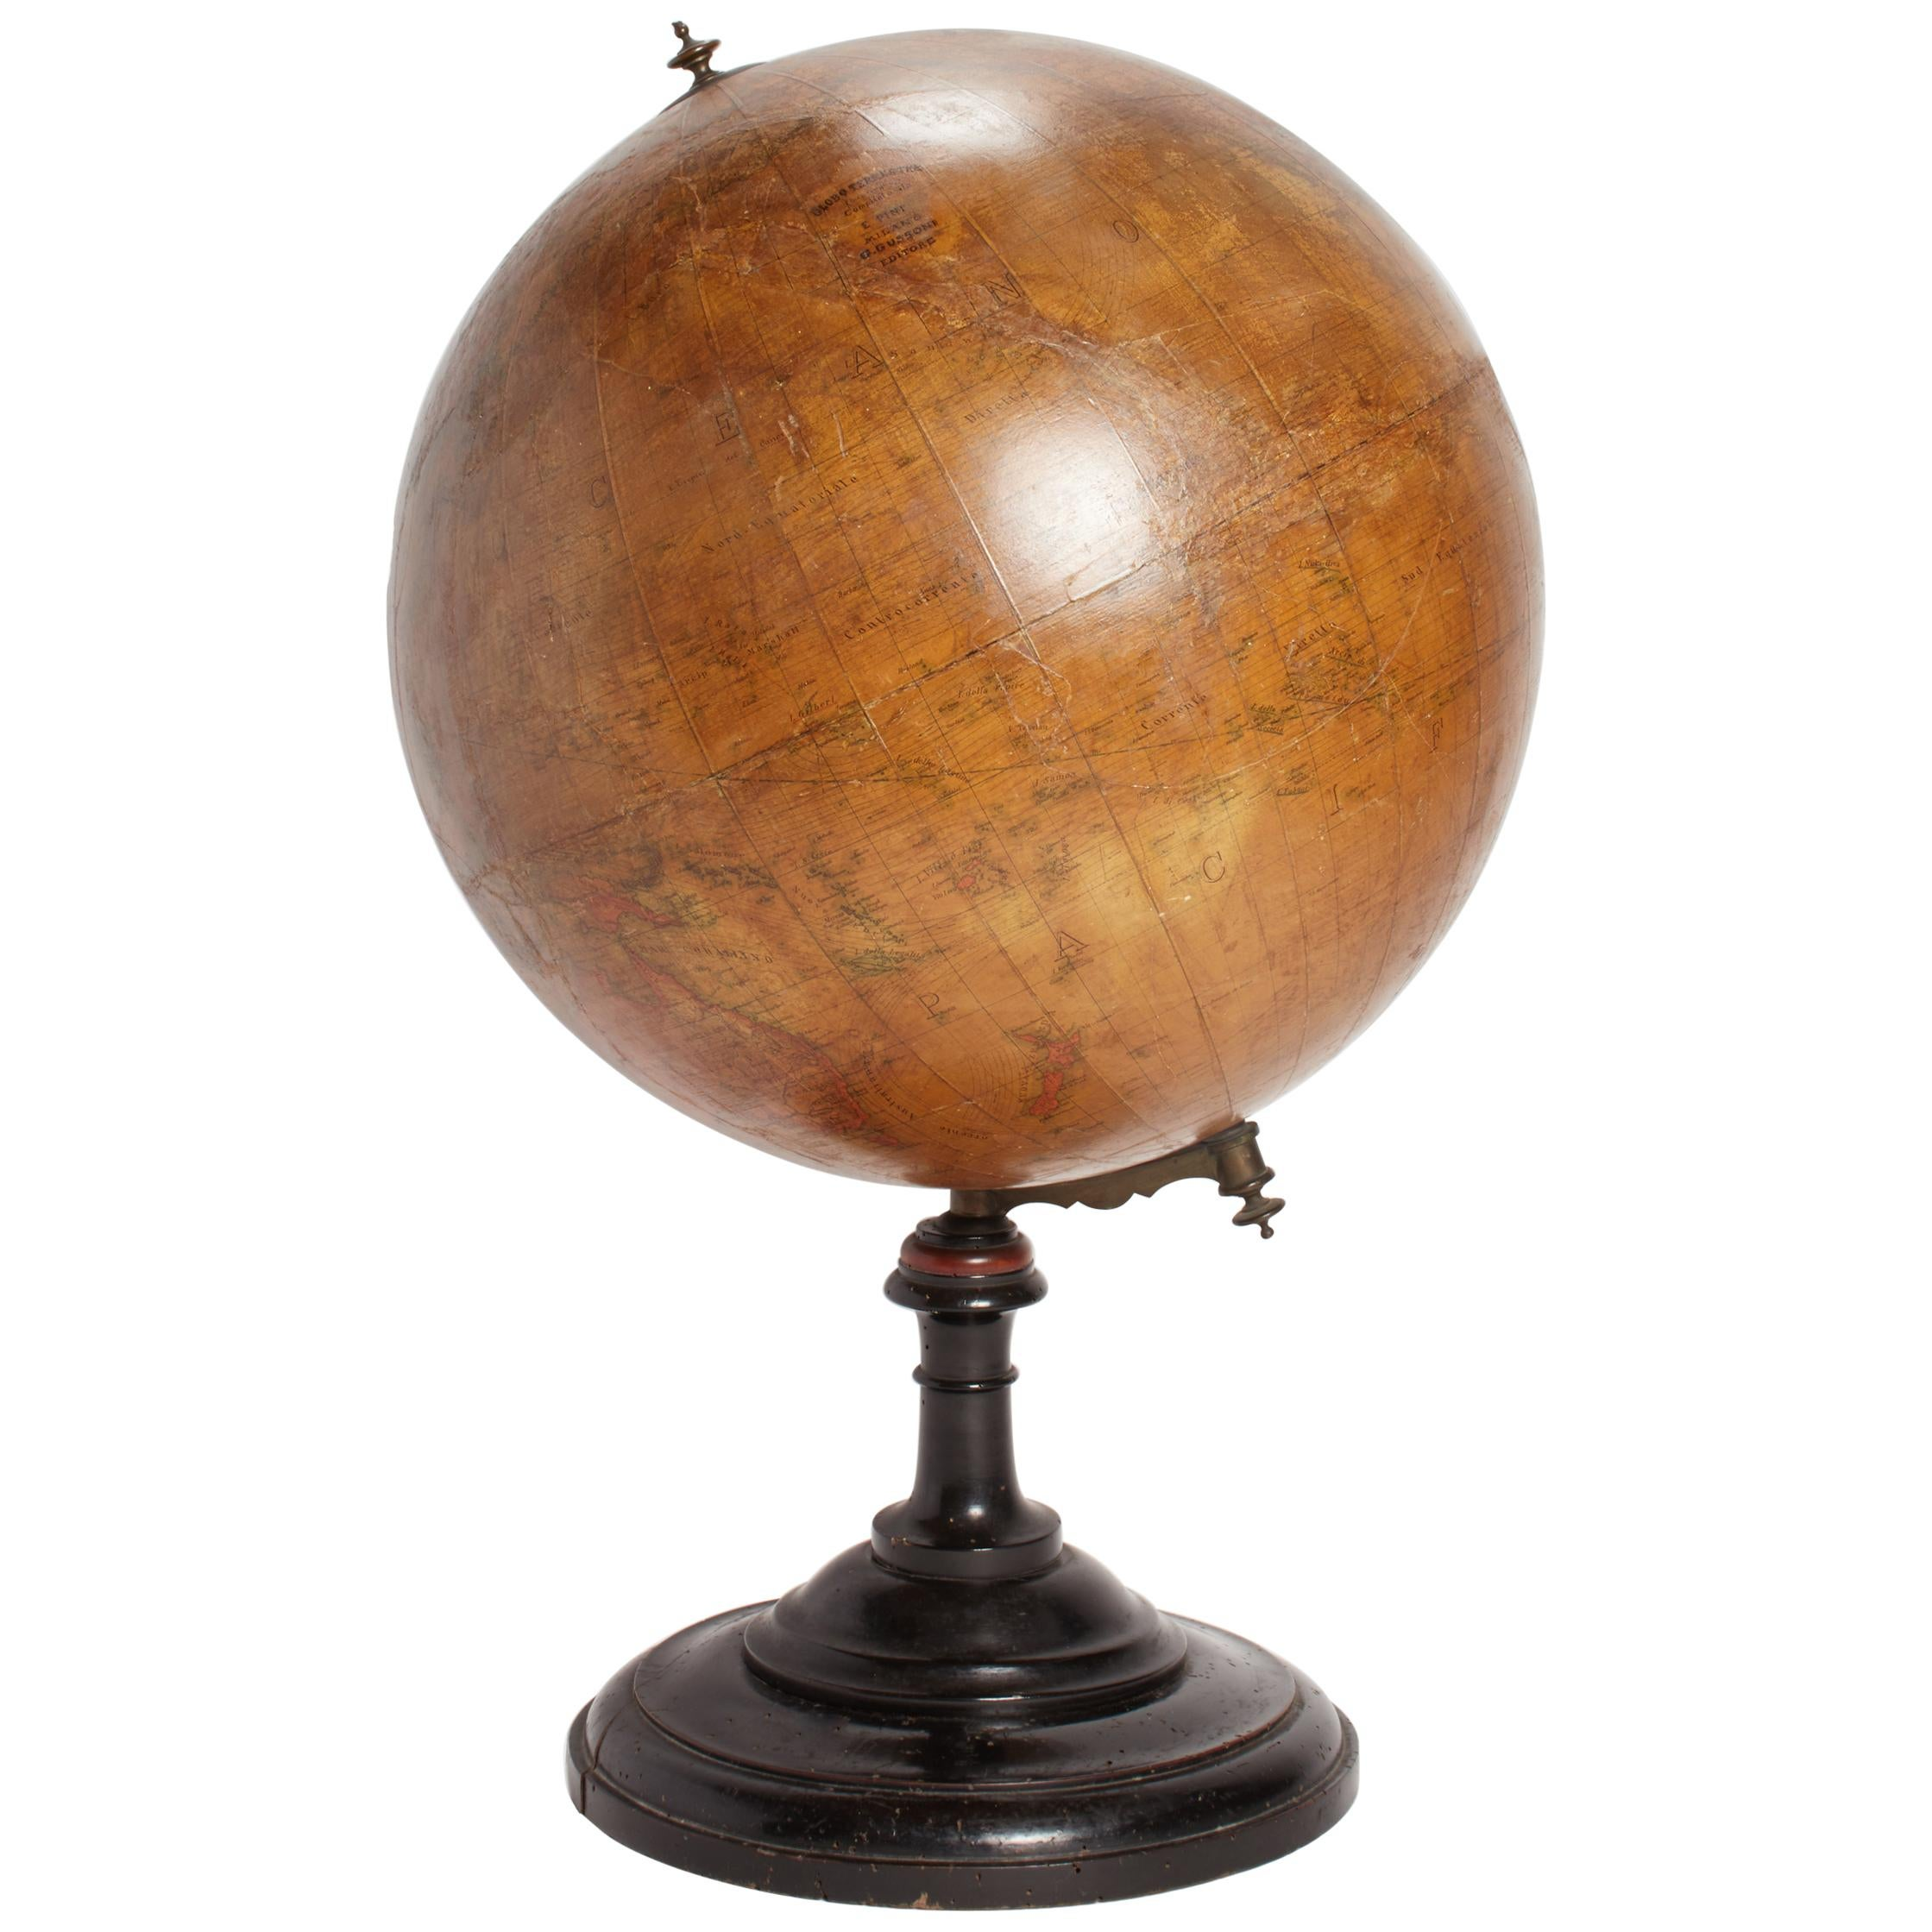 Terrestrial Globe with Wooden Base, Italy, 1880